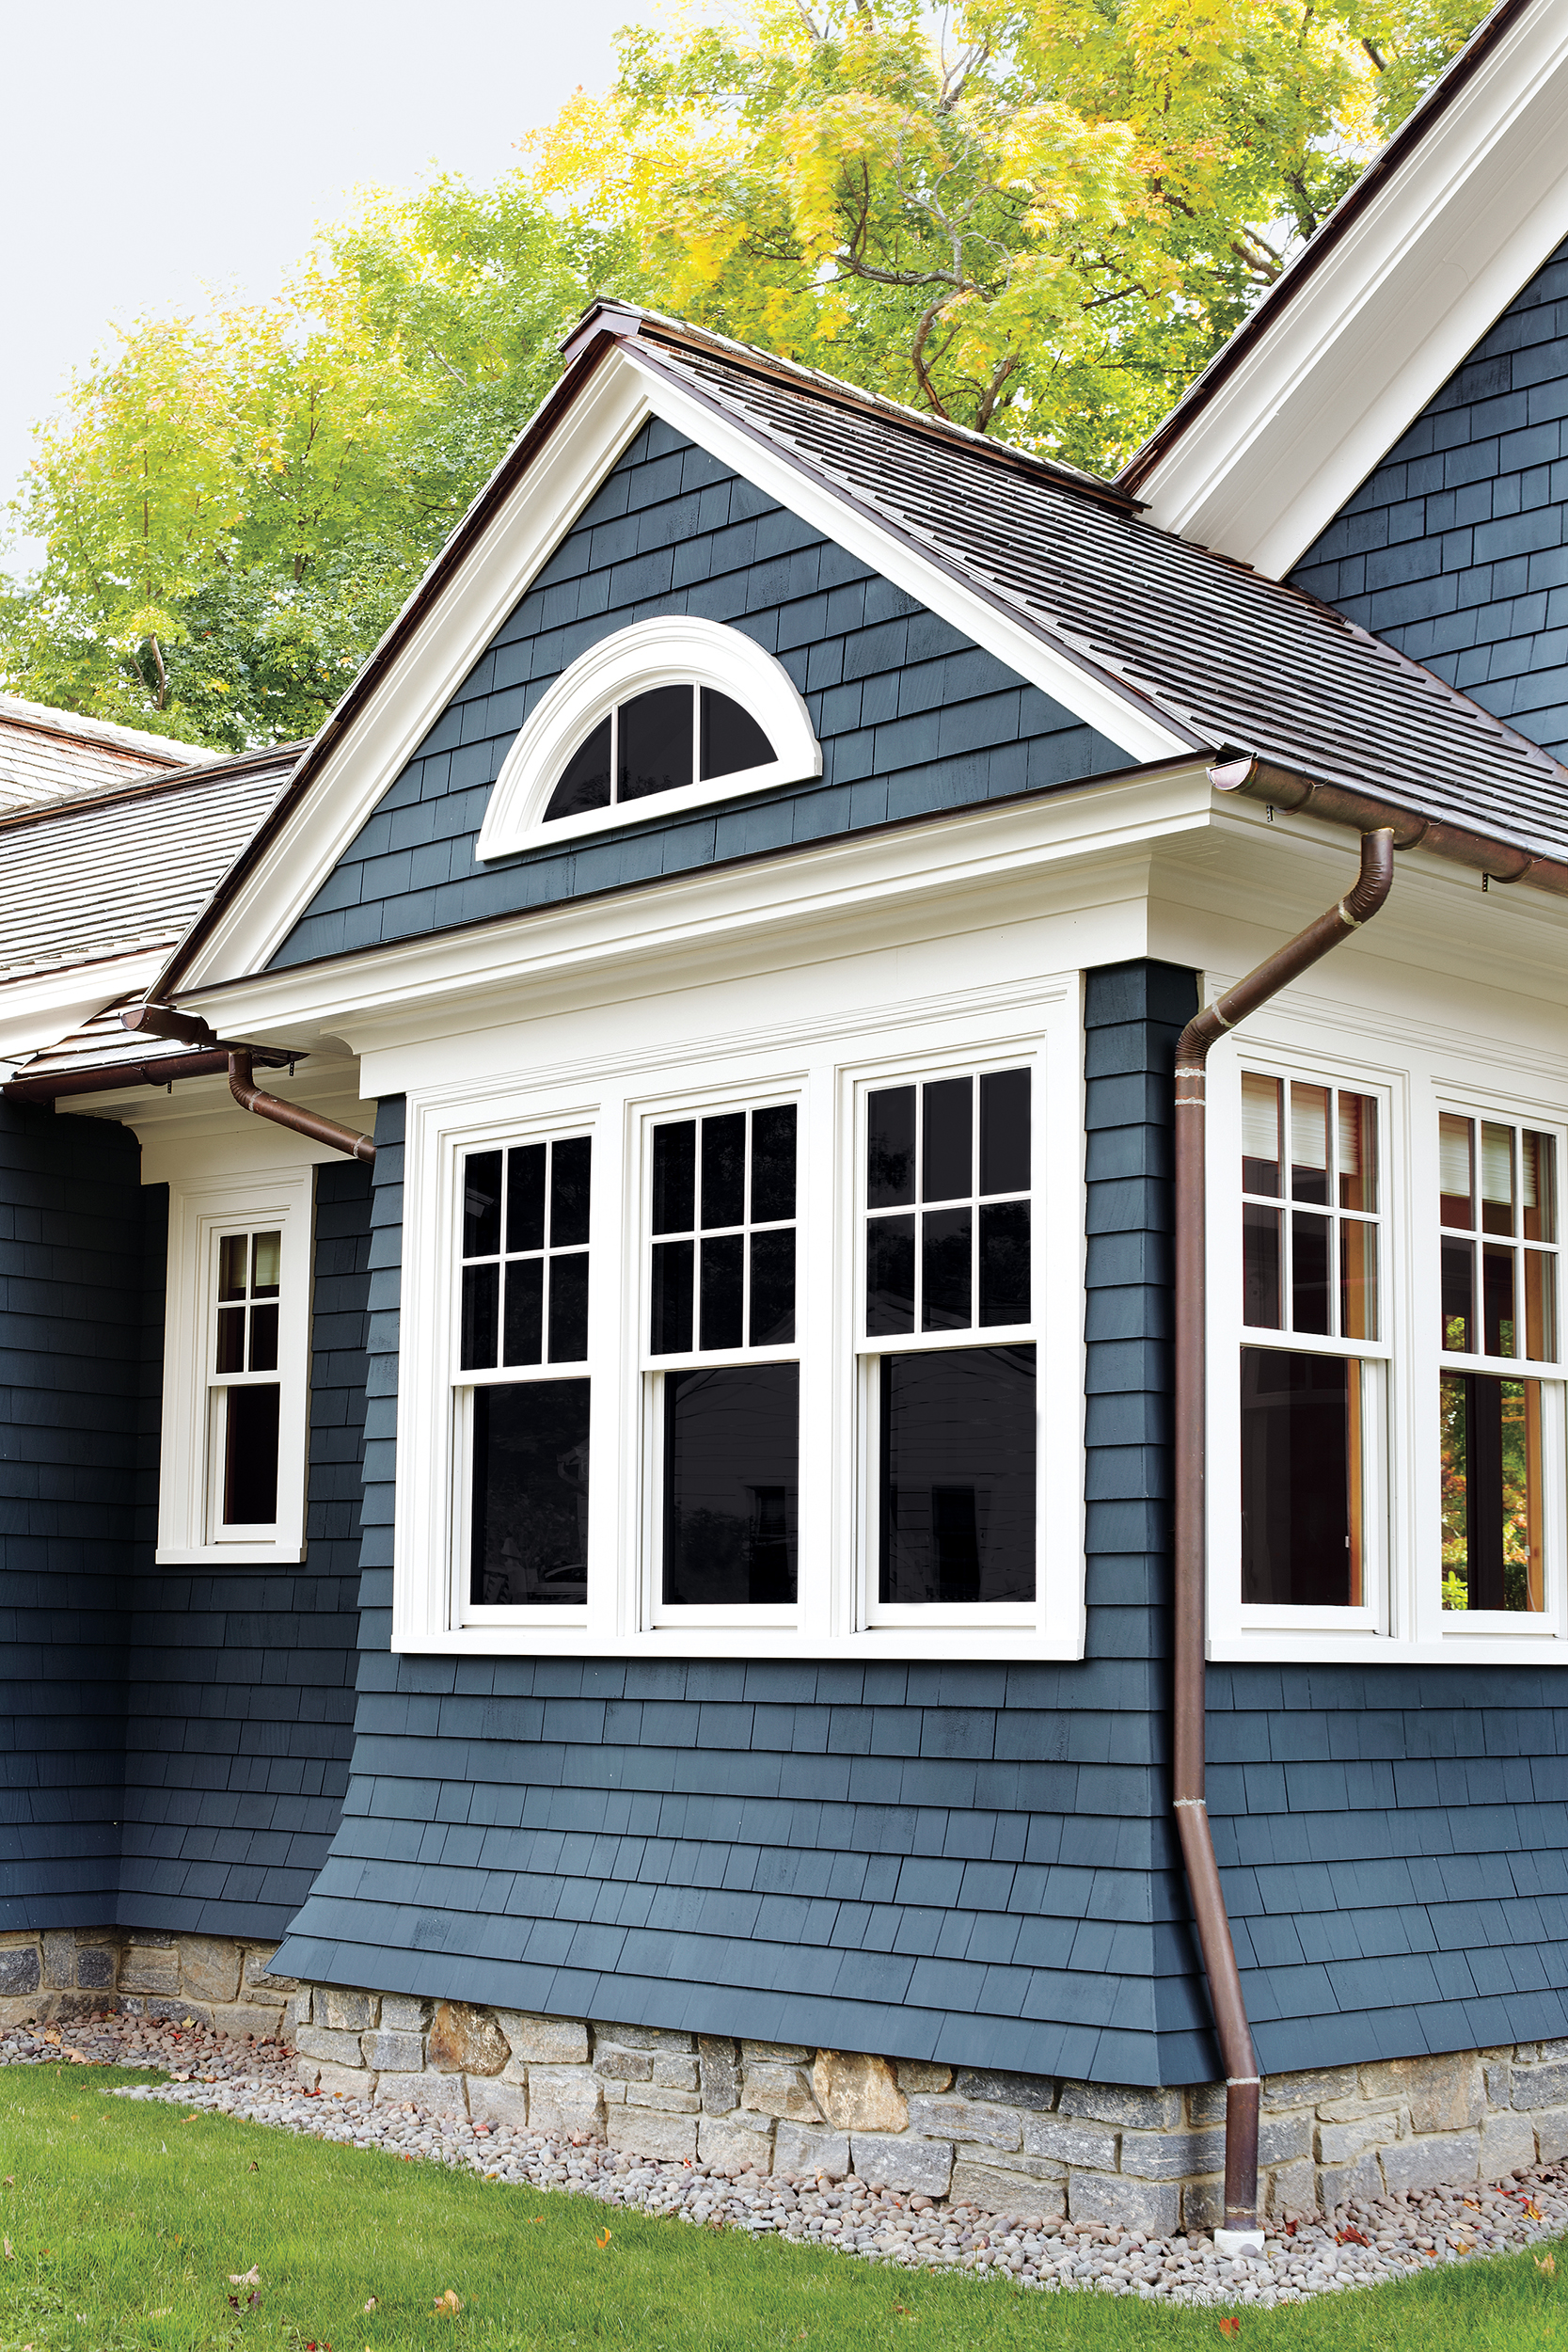 Copper Half-Round Gutters And Round Downspouts On Traditional House Designs